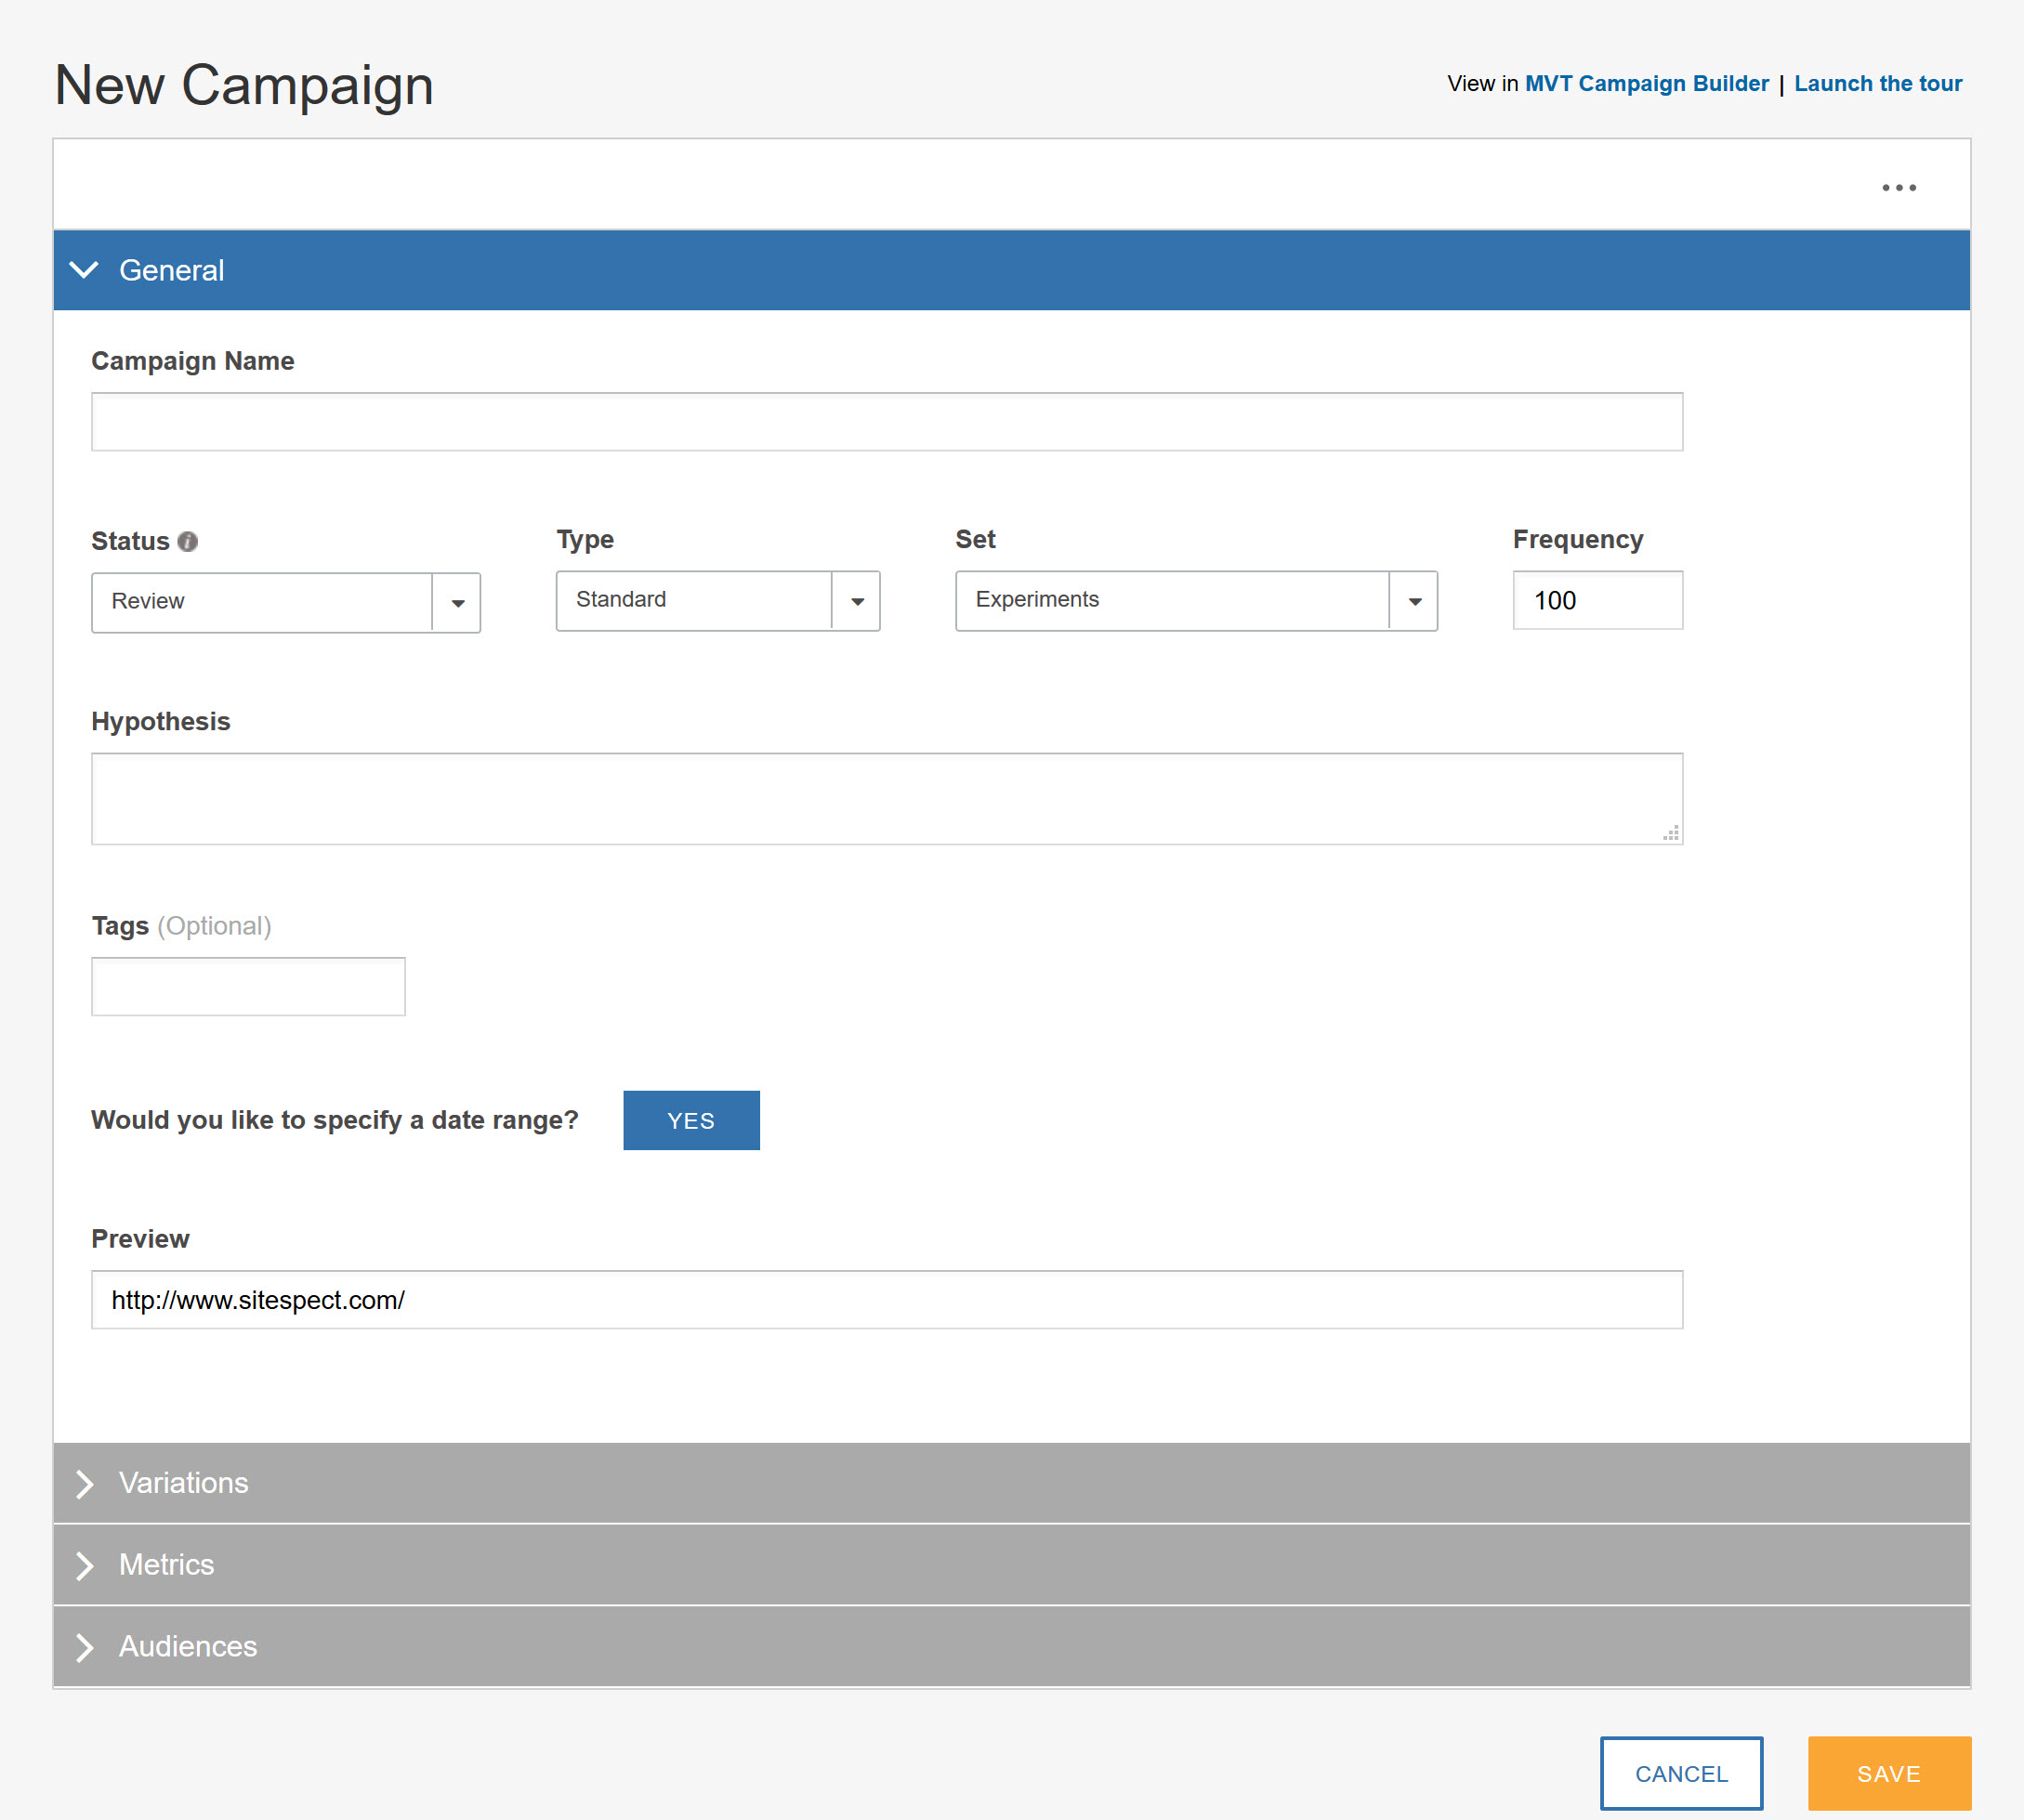 How do I build a Campaign in Find & Replace Mode - New Campaign